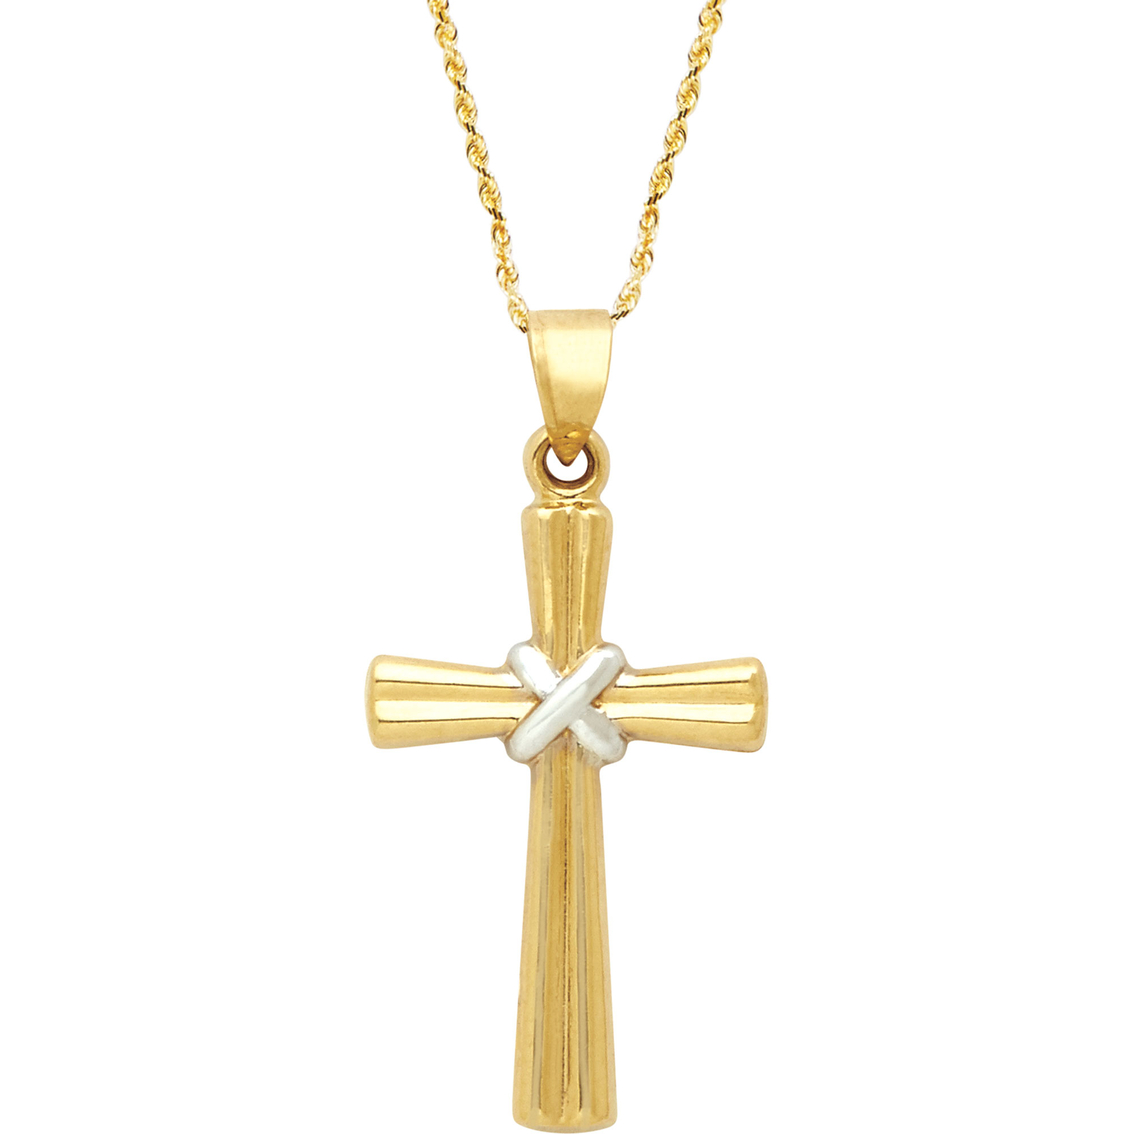 14k yellow gold two toned ribbed cross pendant with solid gold chain 14k yellow gold two toned ribbed cross pendant with solid gold chain aloadofball Choice Image